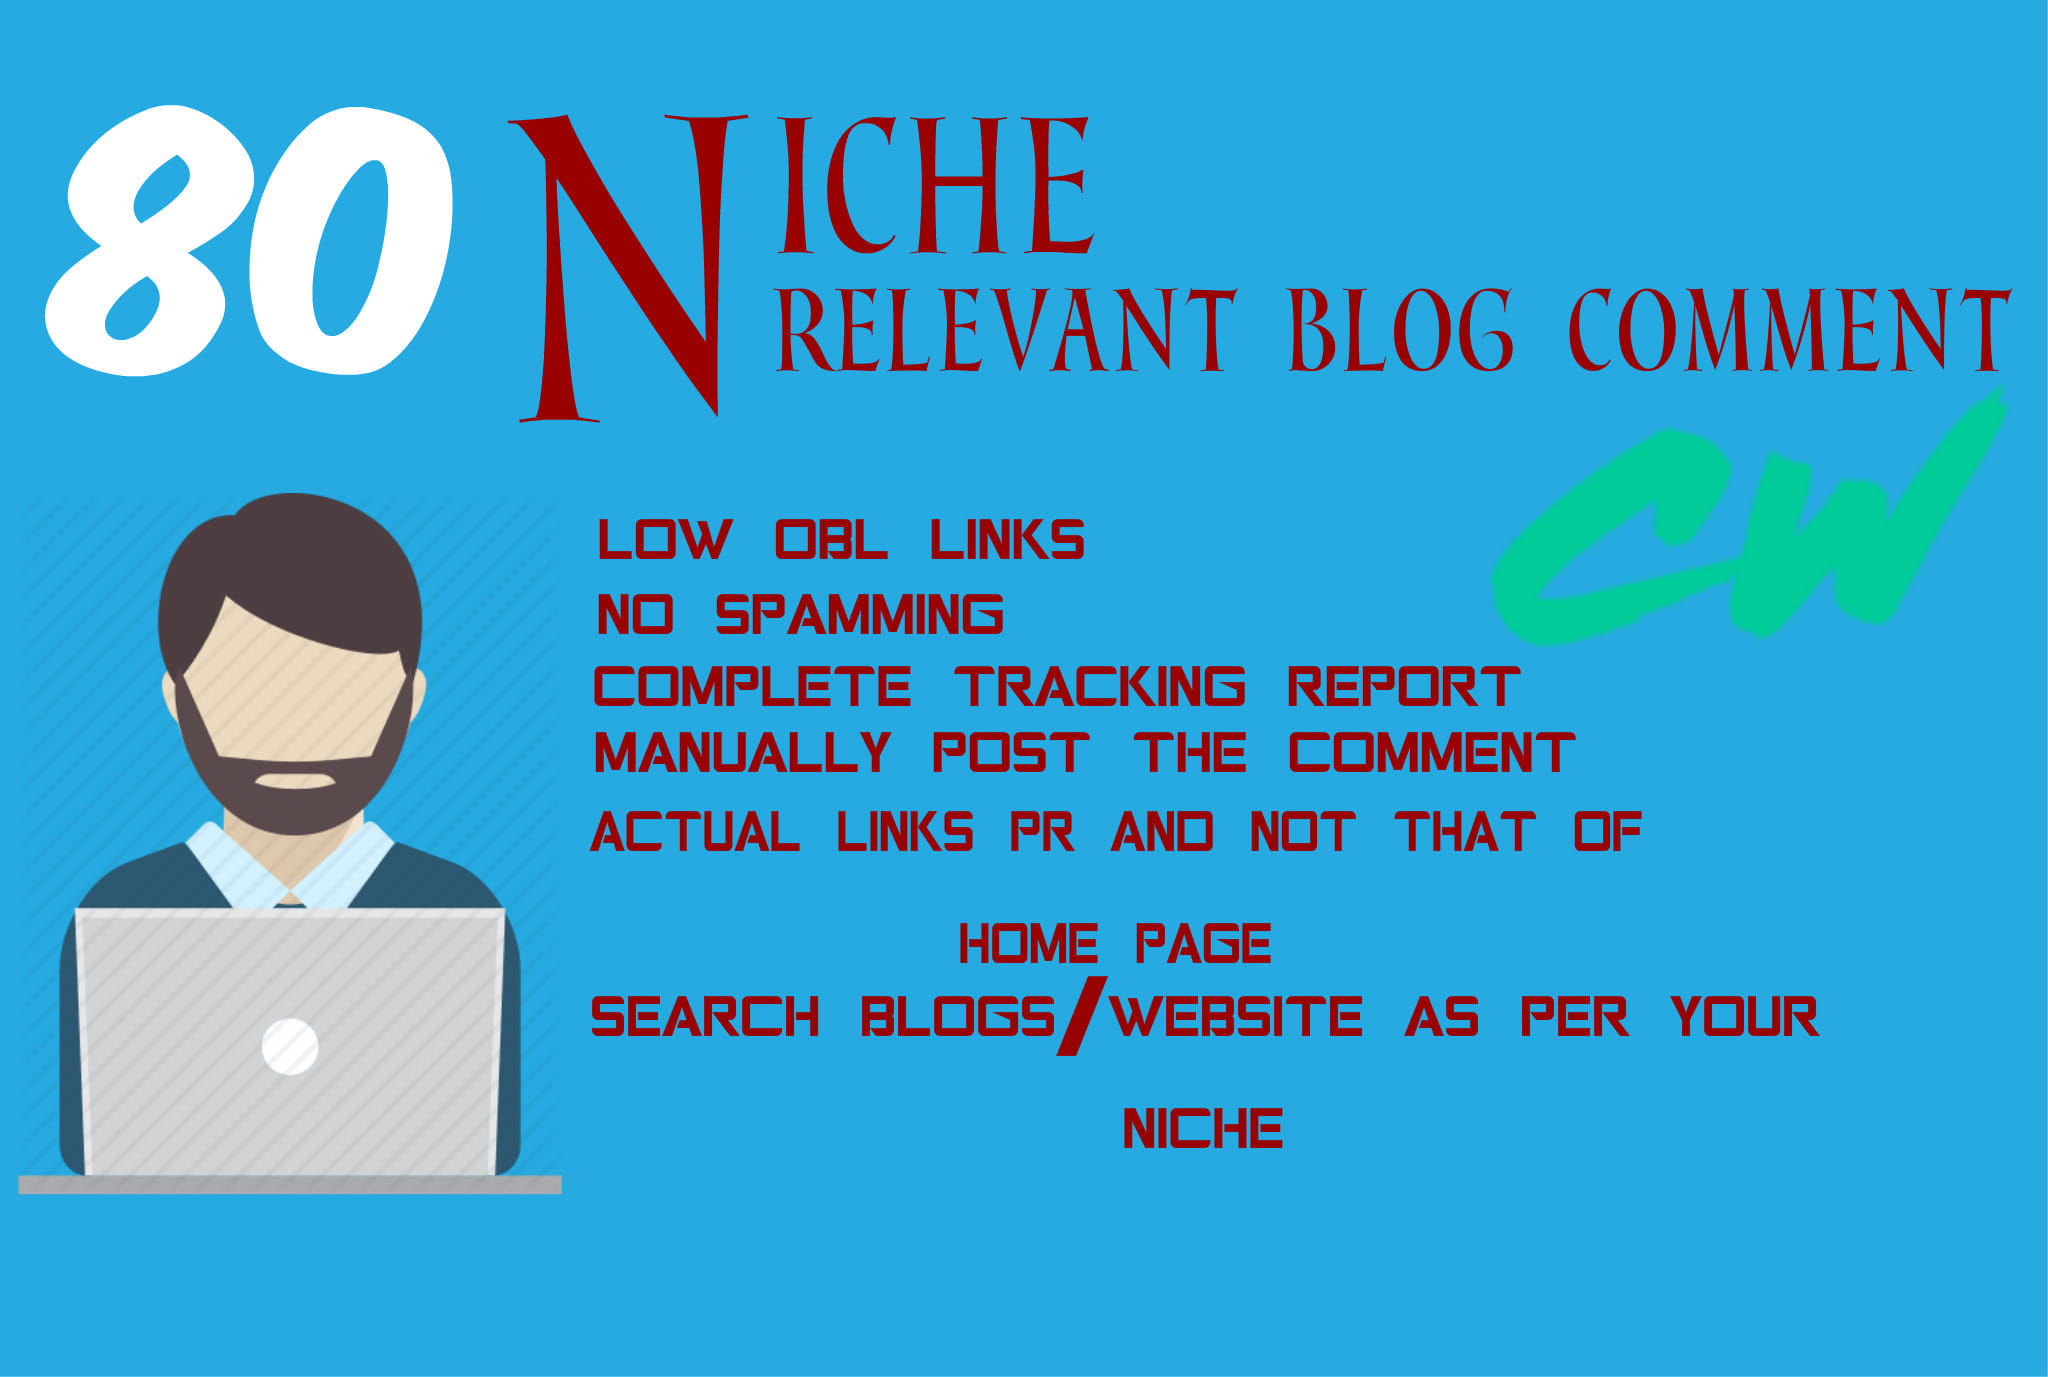 Provide 80 Niche Relevant Blog Comment quality work